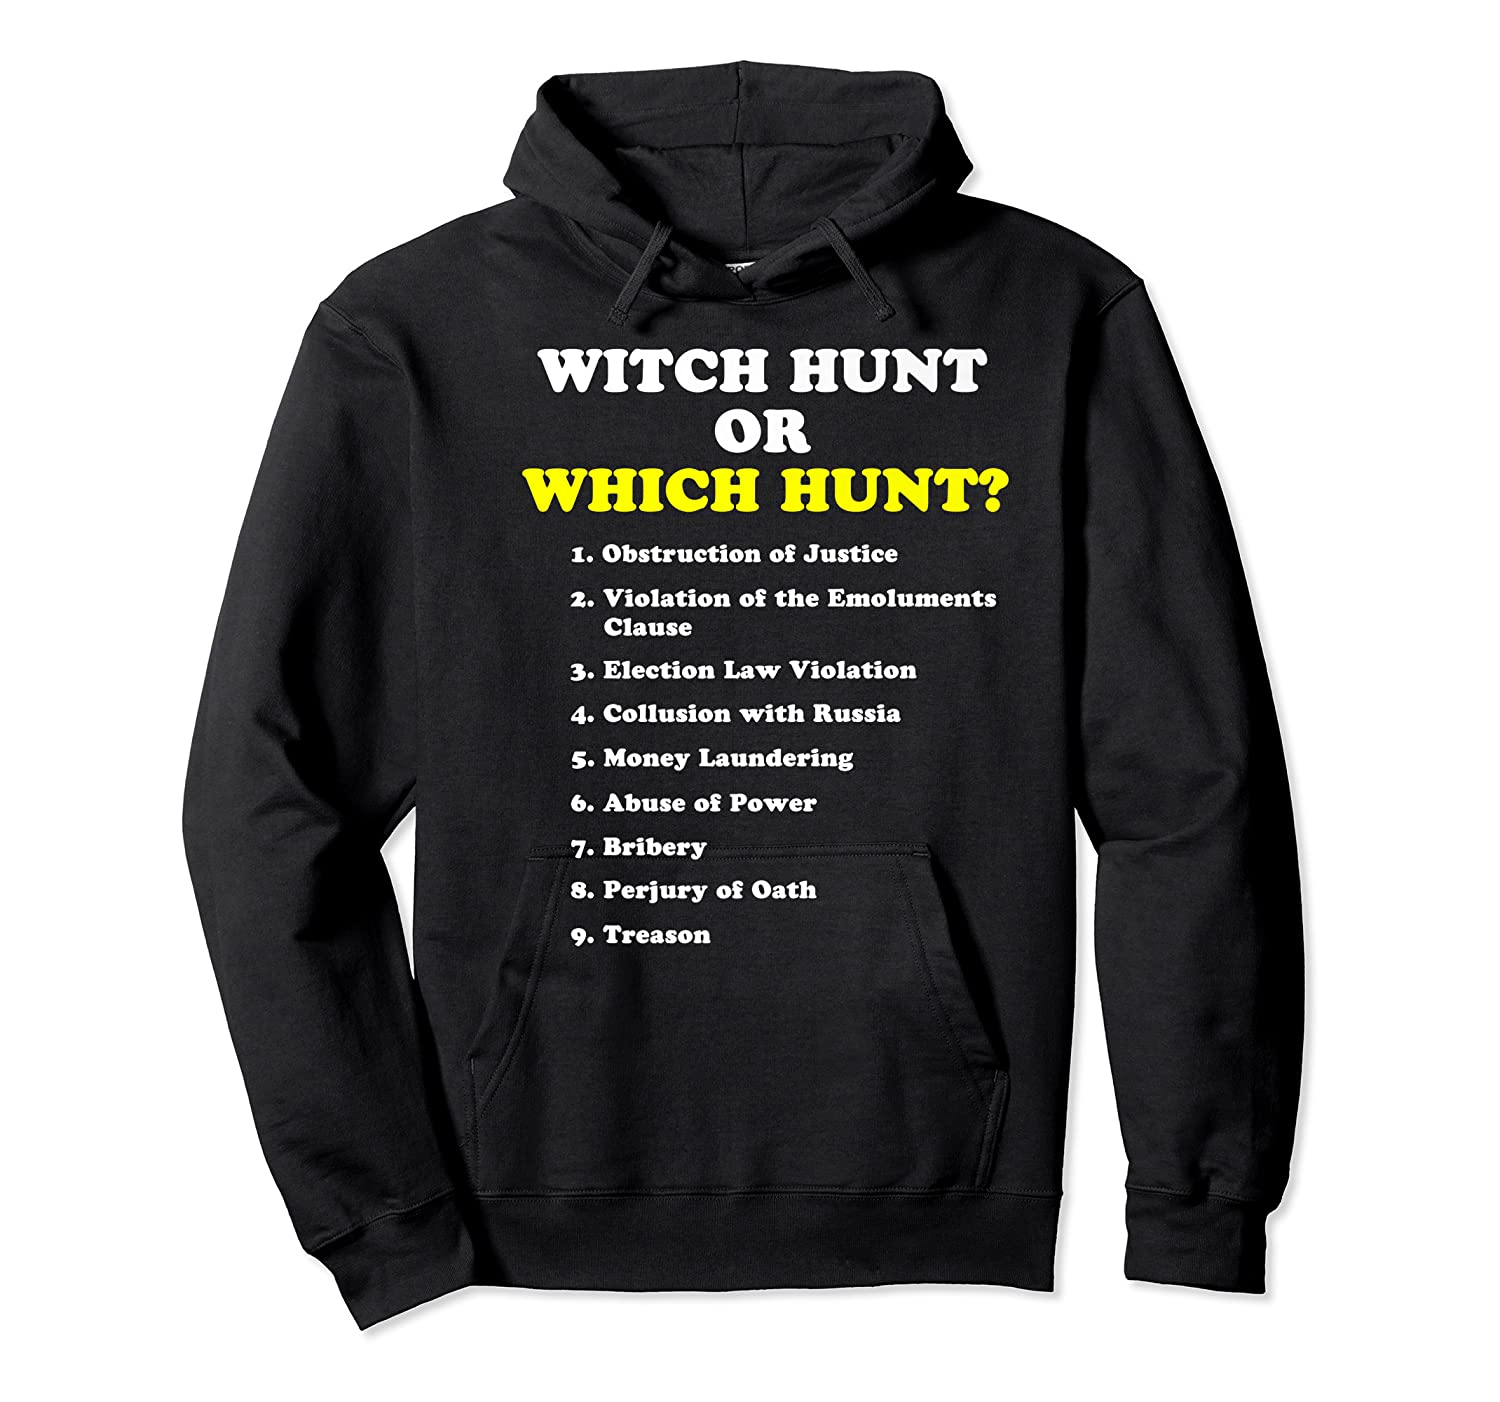 Witch Hunt Or Which Hunt 9 Reasons To Impeach Trump T Shirt Unisex Pullover Hoodie